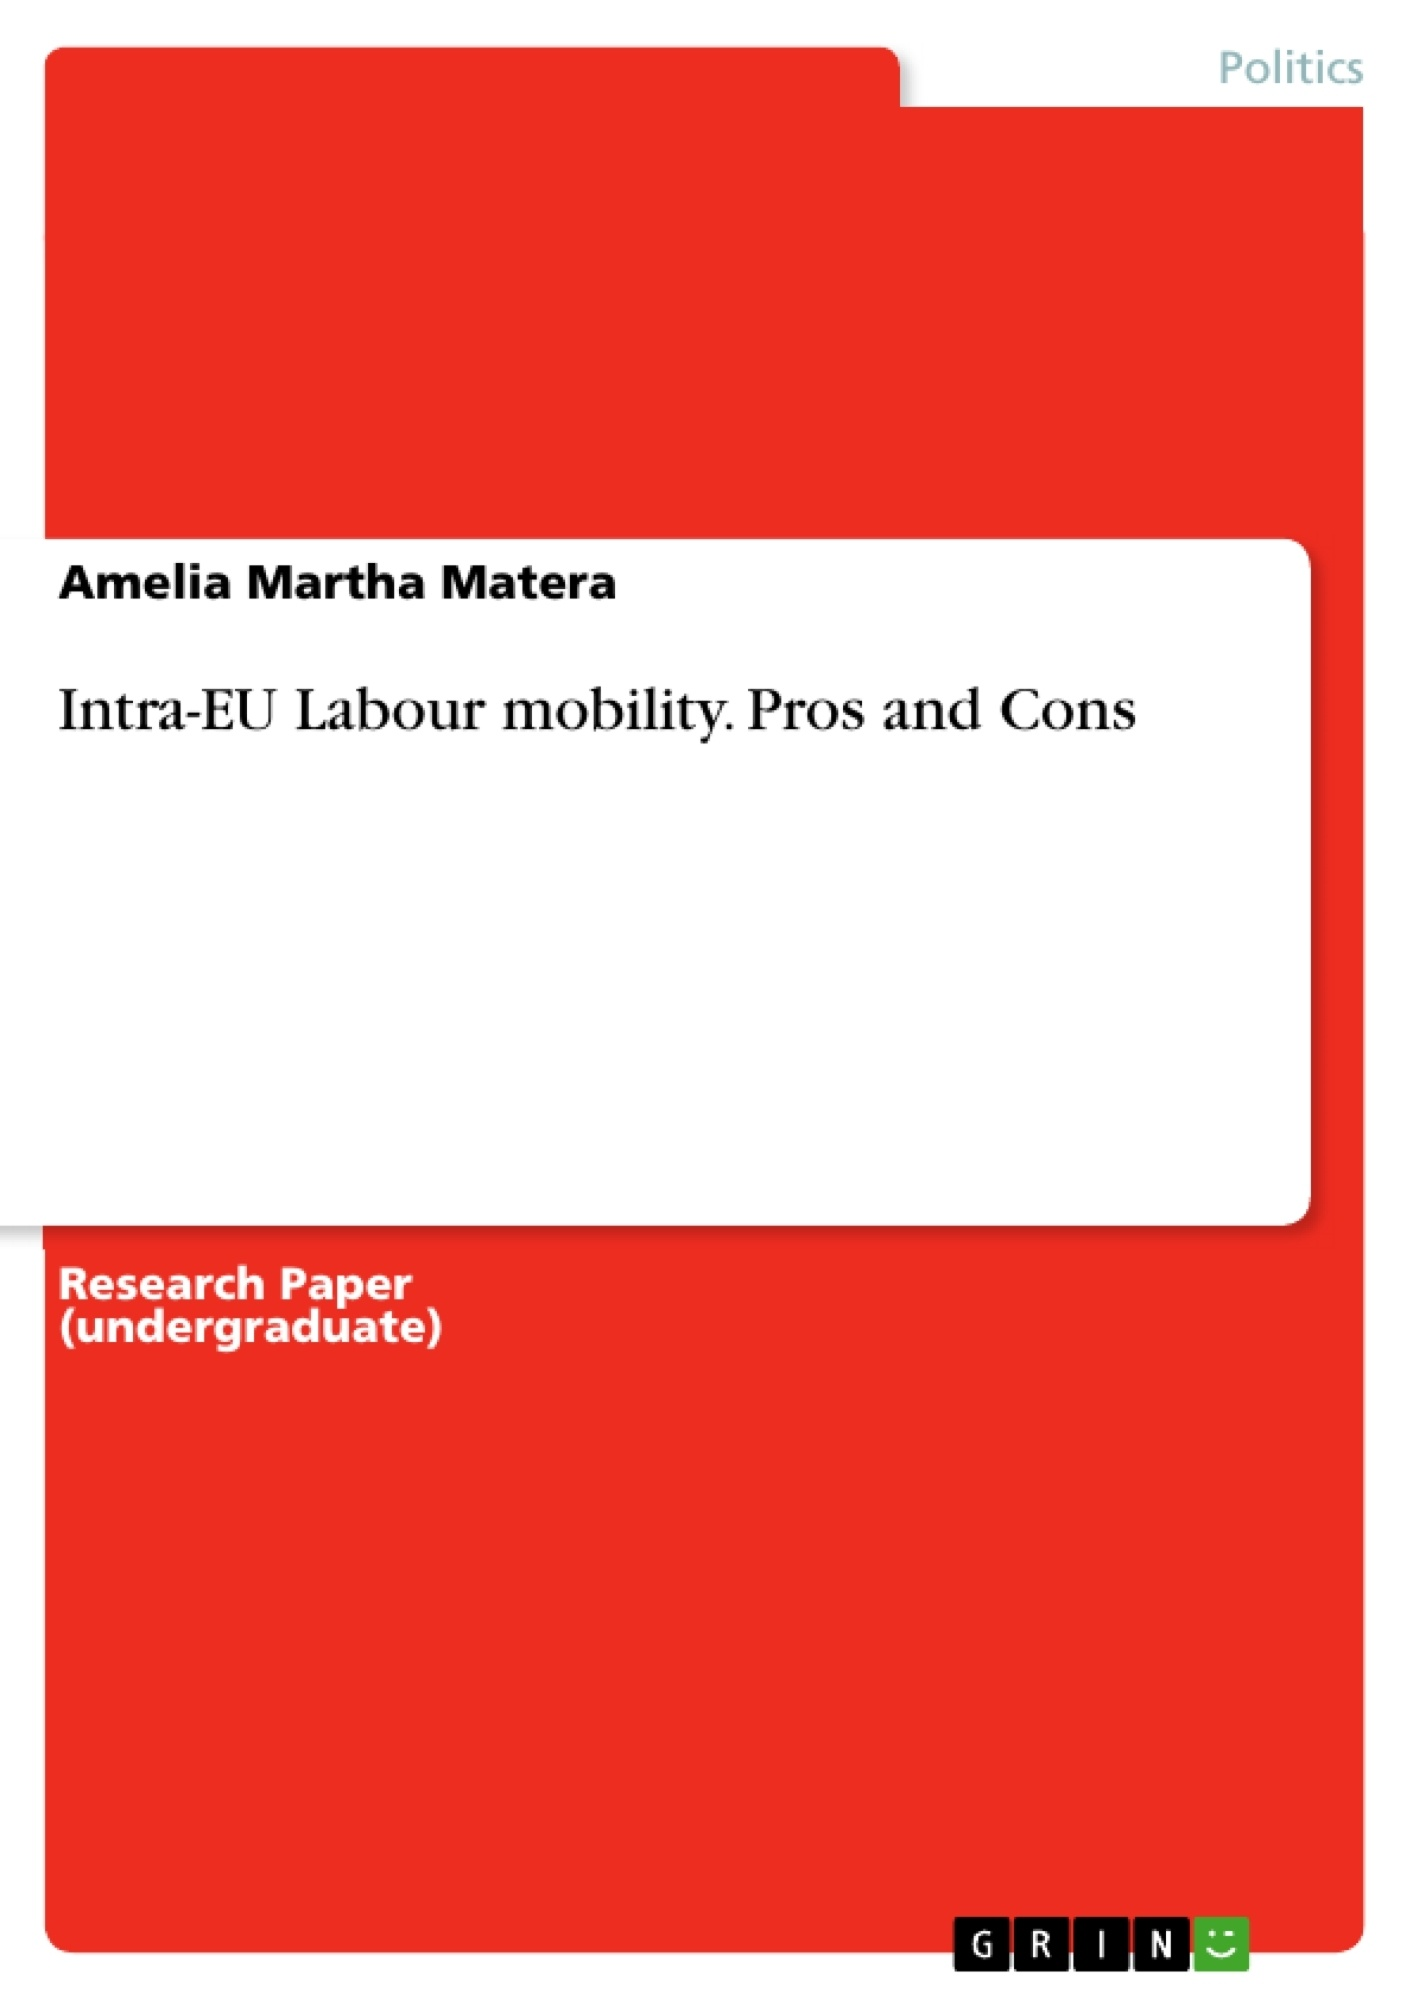 Title: Intra-EU Labour mobility. Pros and Cons